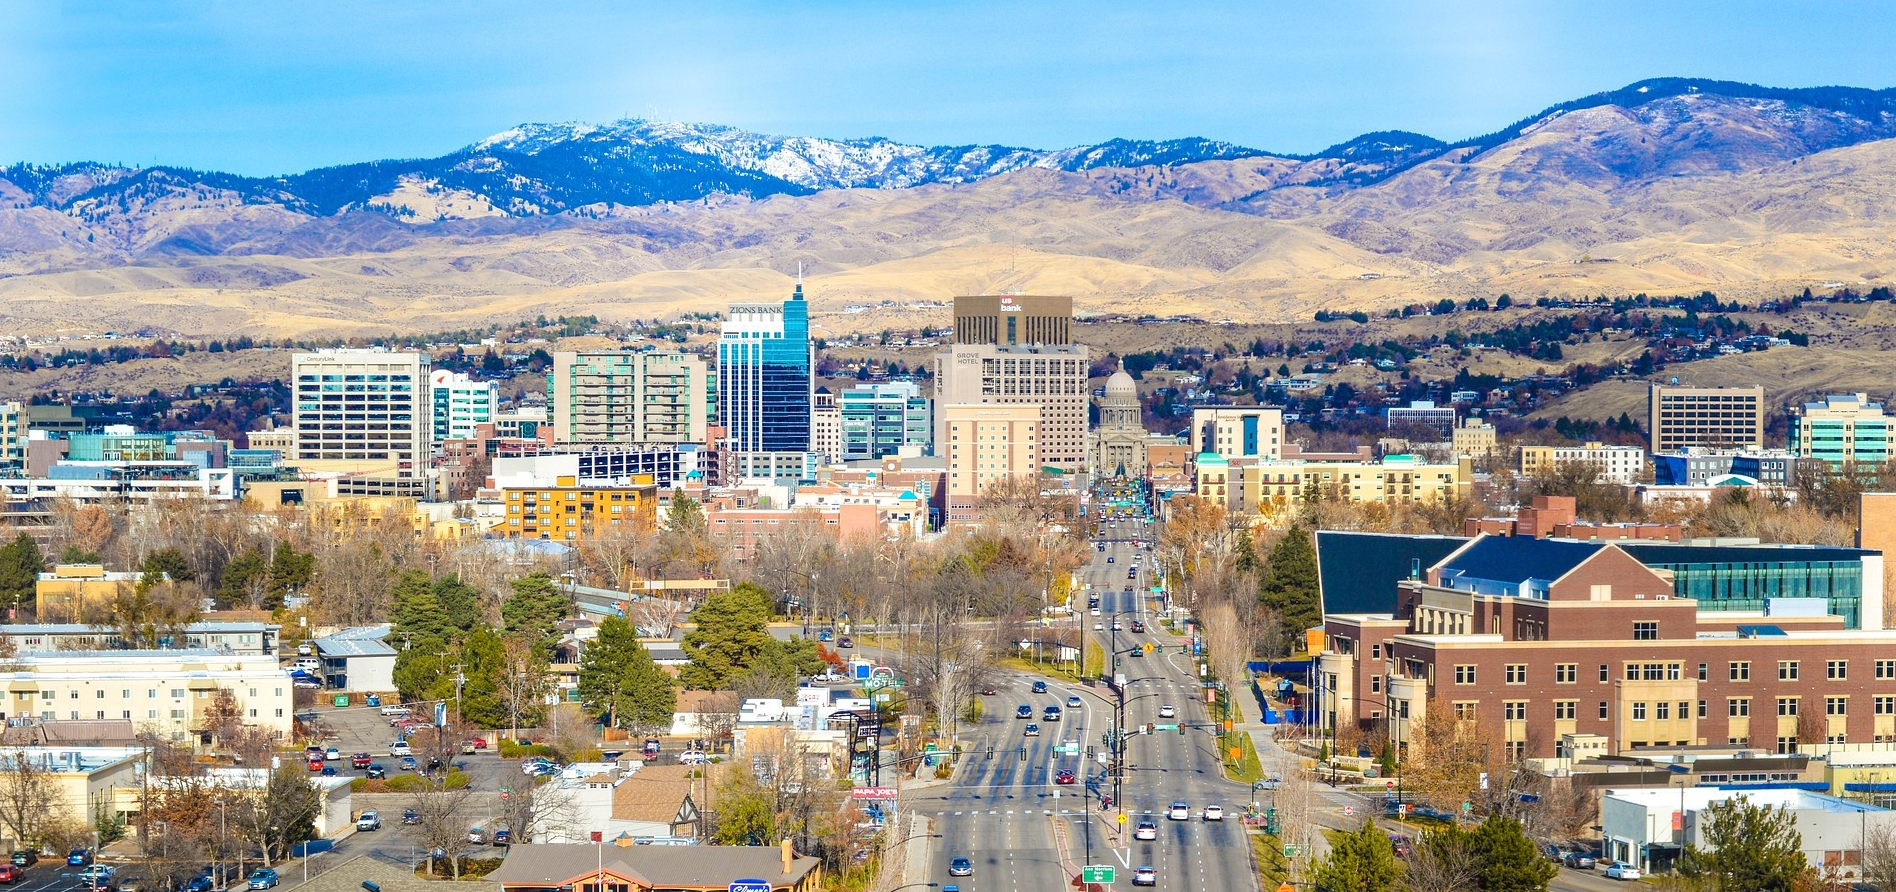 Downtown Boise with foothills in distance, photograph